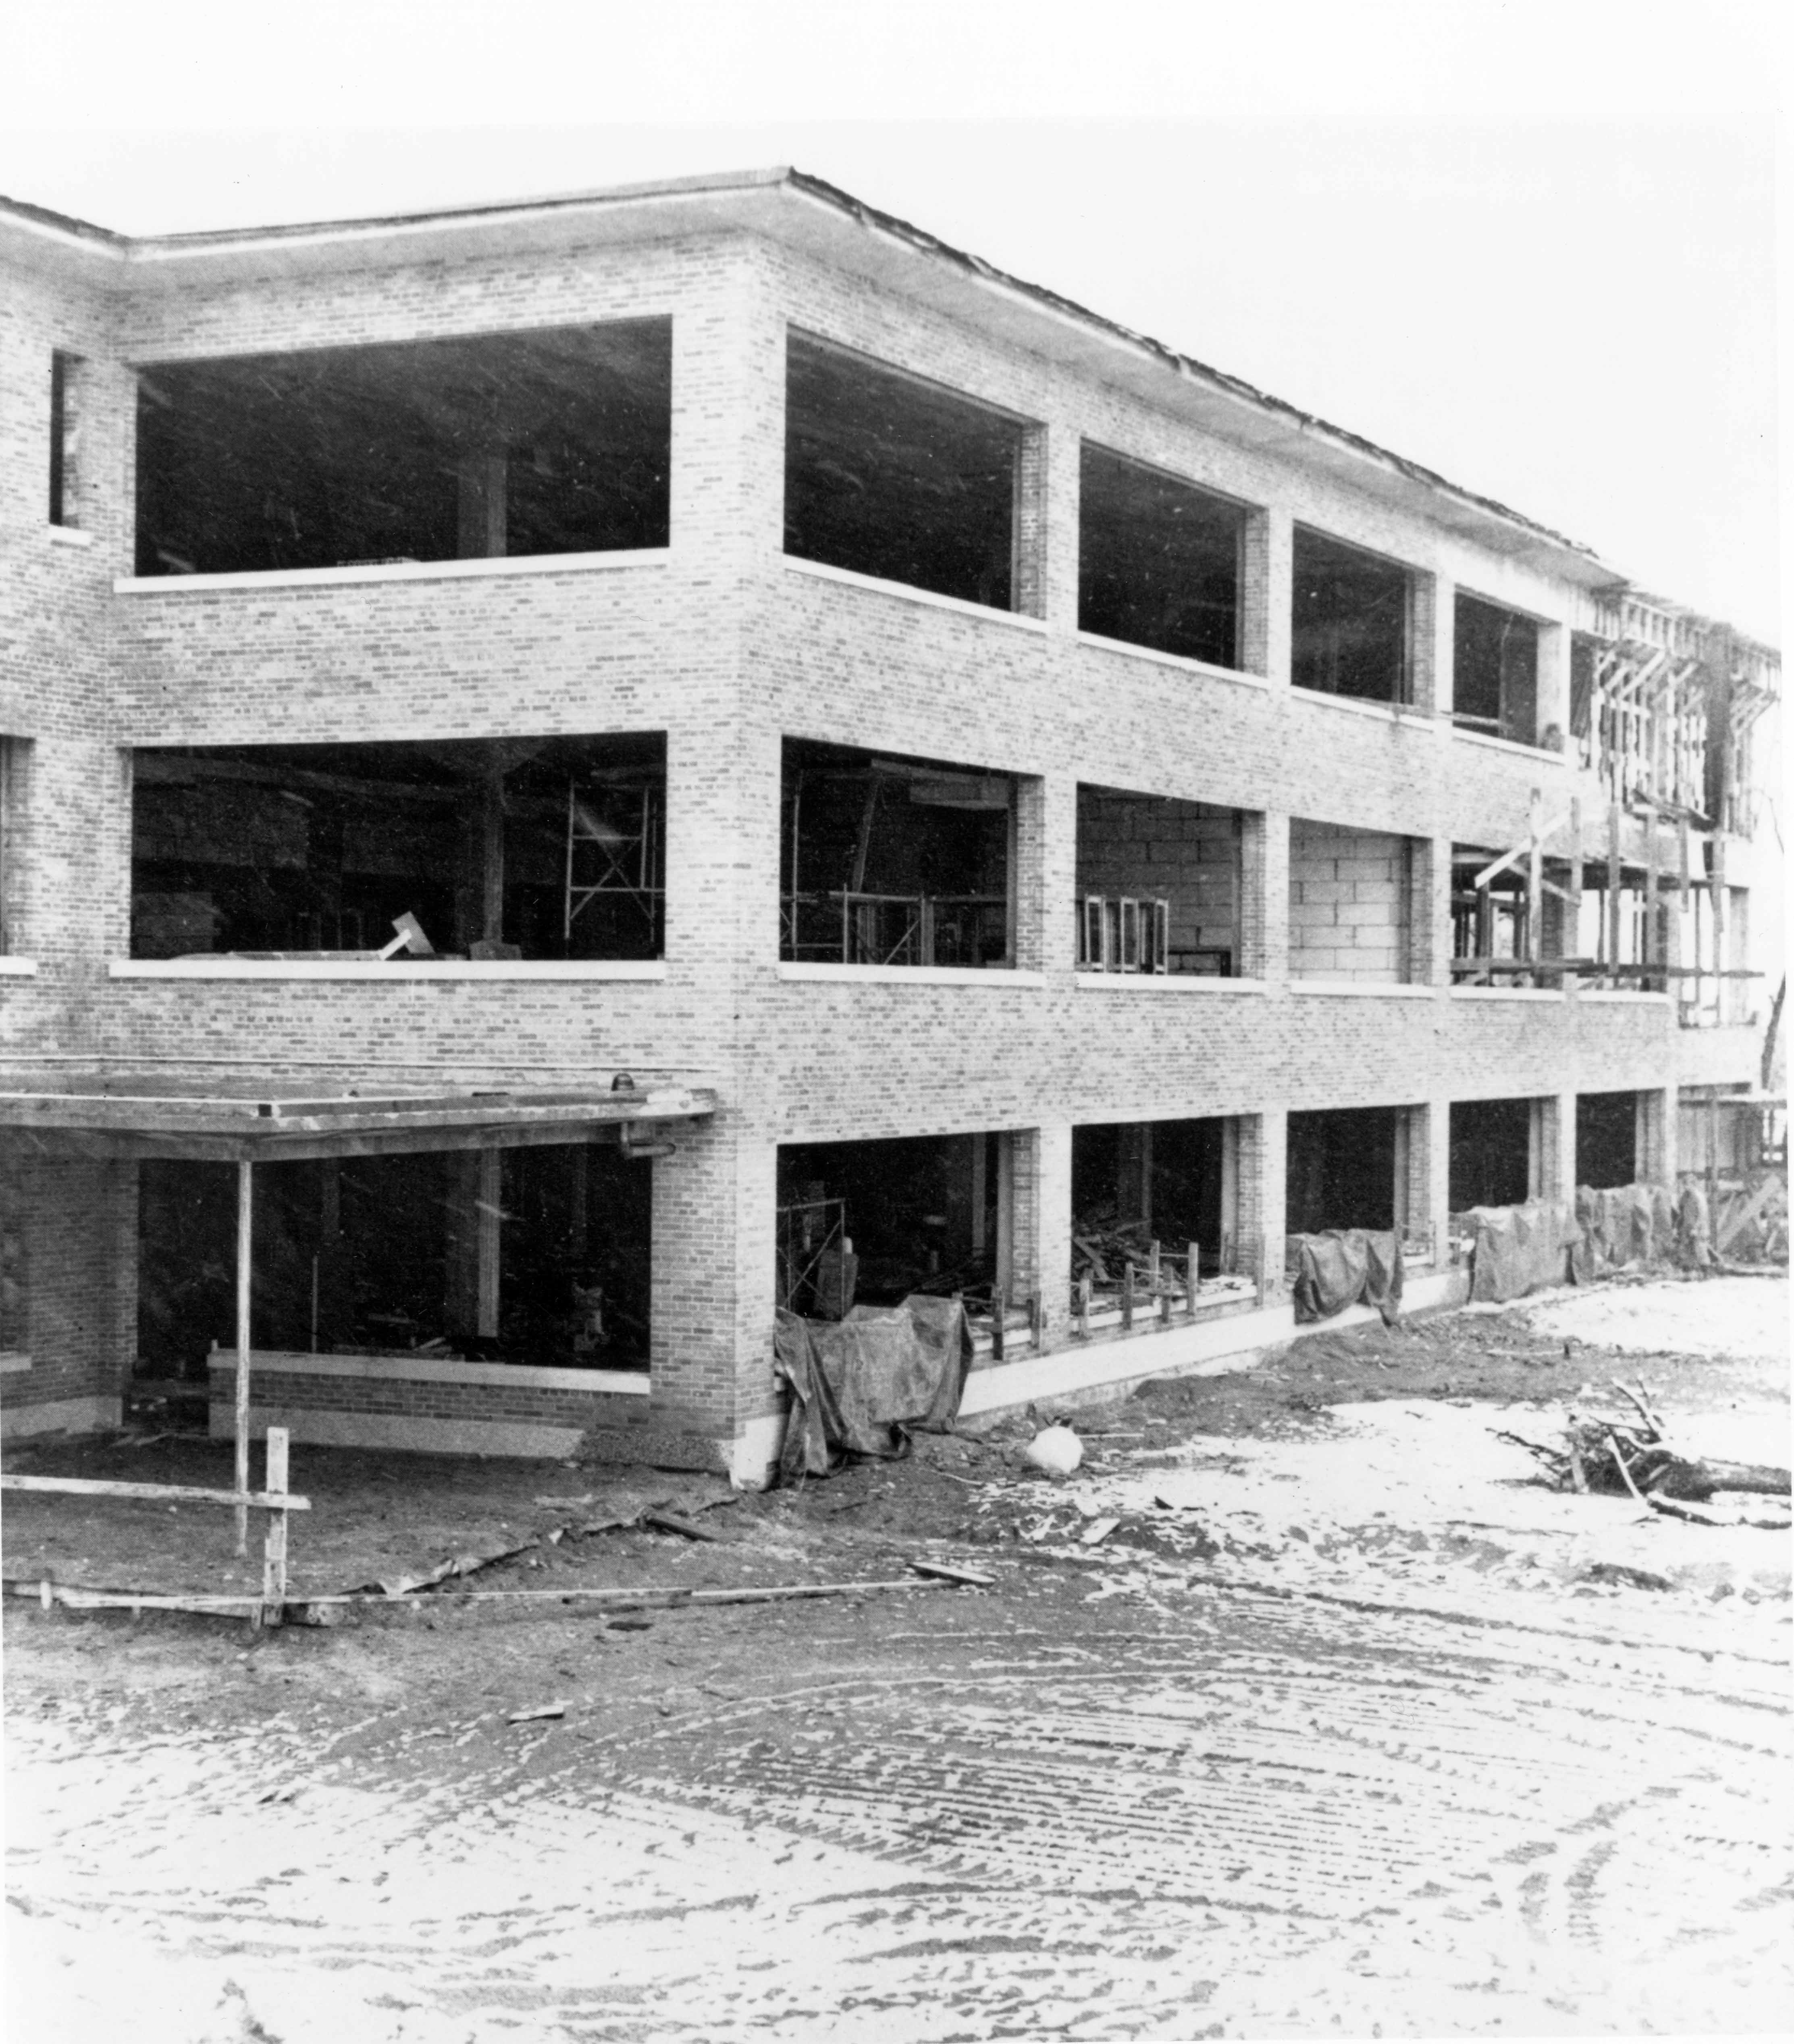 Kiehle Library construction, 1952?